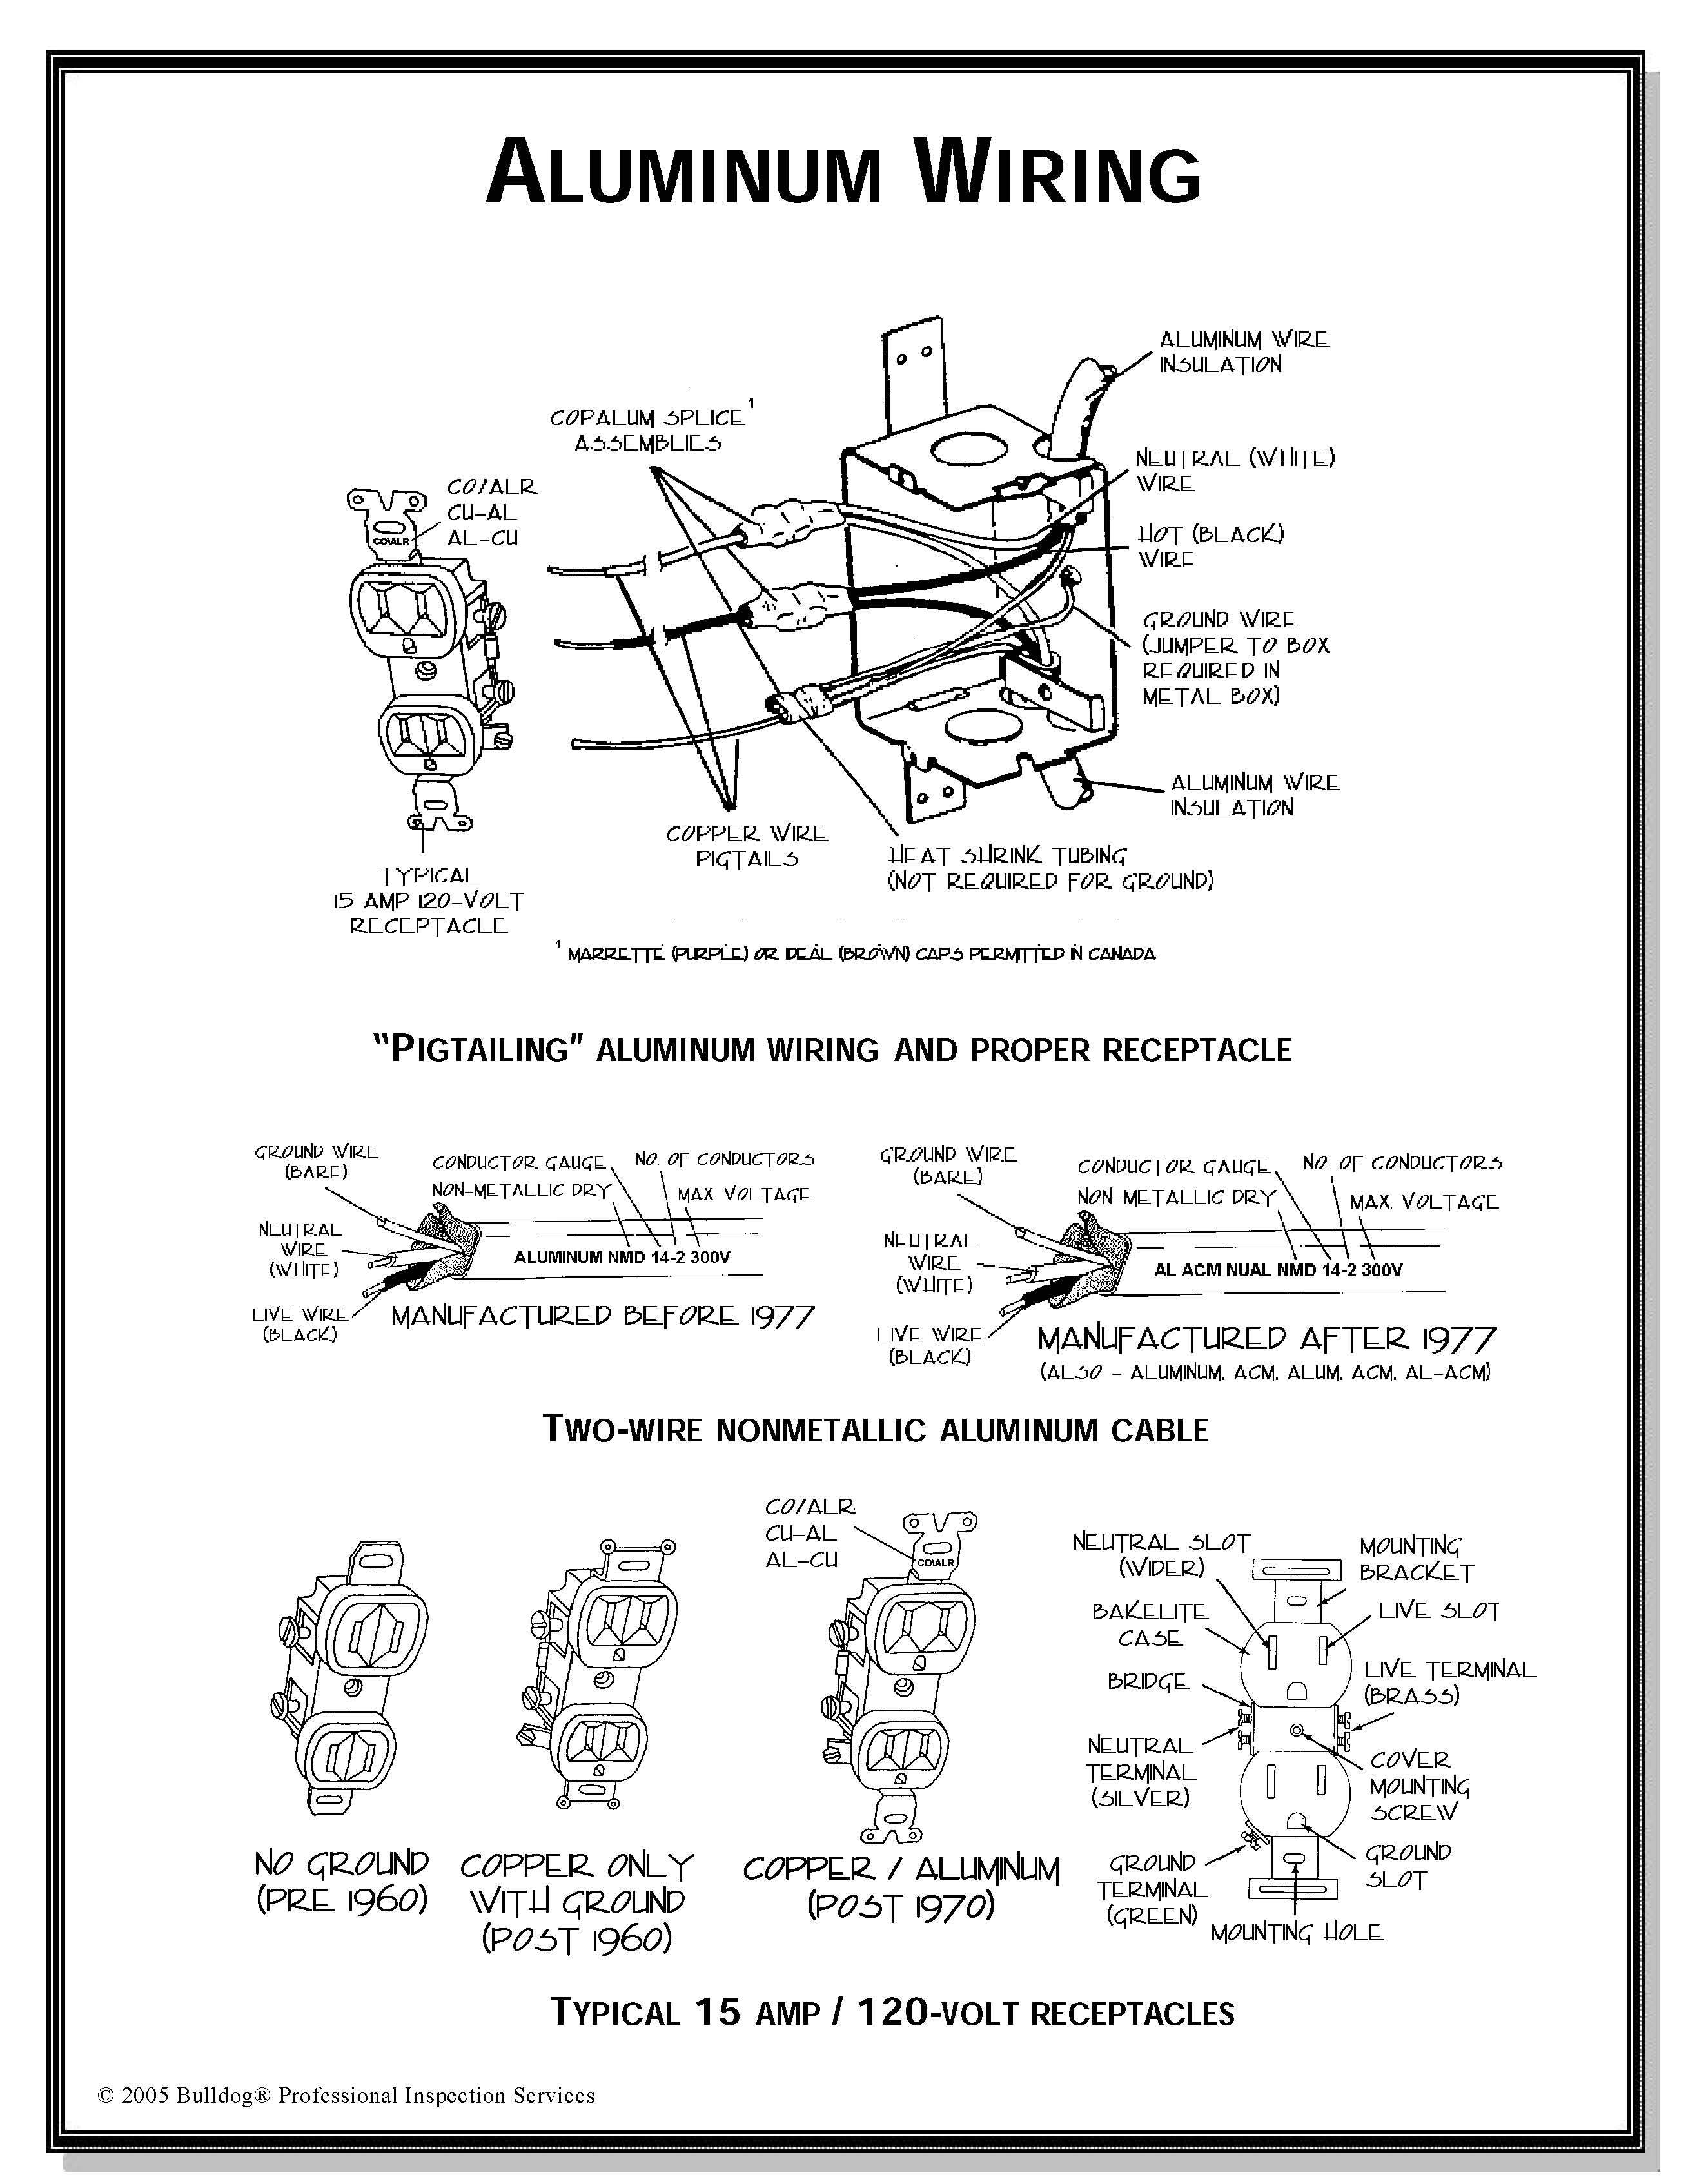 Home Inspection Aluminum Wiring Auto Electrical Diagram Arb Harness Lighting Intermatic T102 John Deere Rx95 2003 Ford F 250 Super Duty Cooler